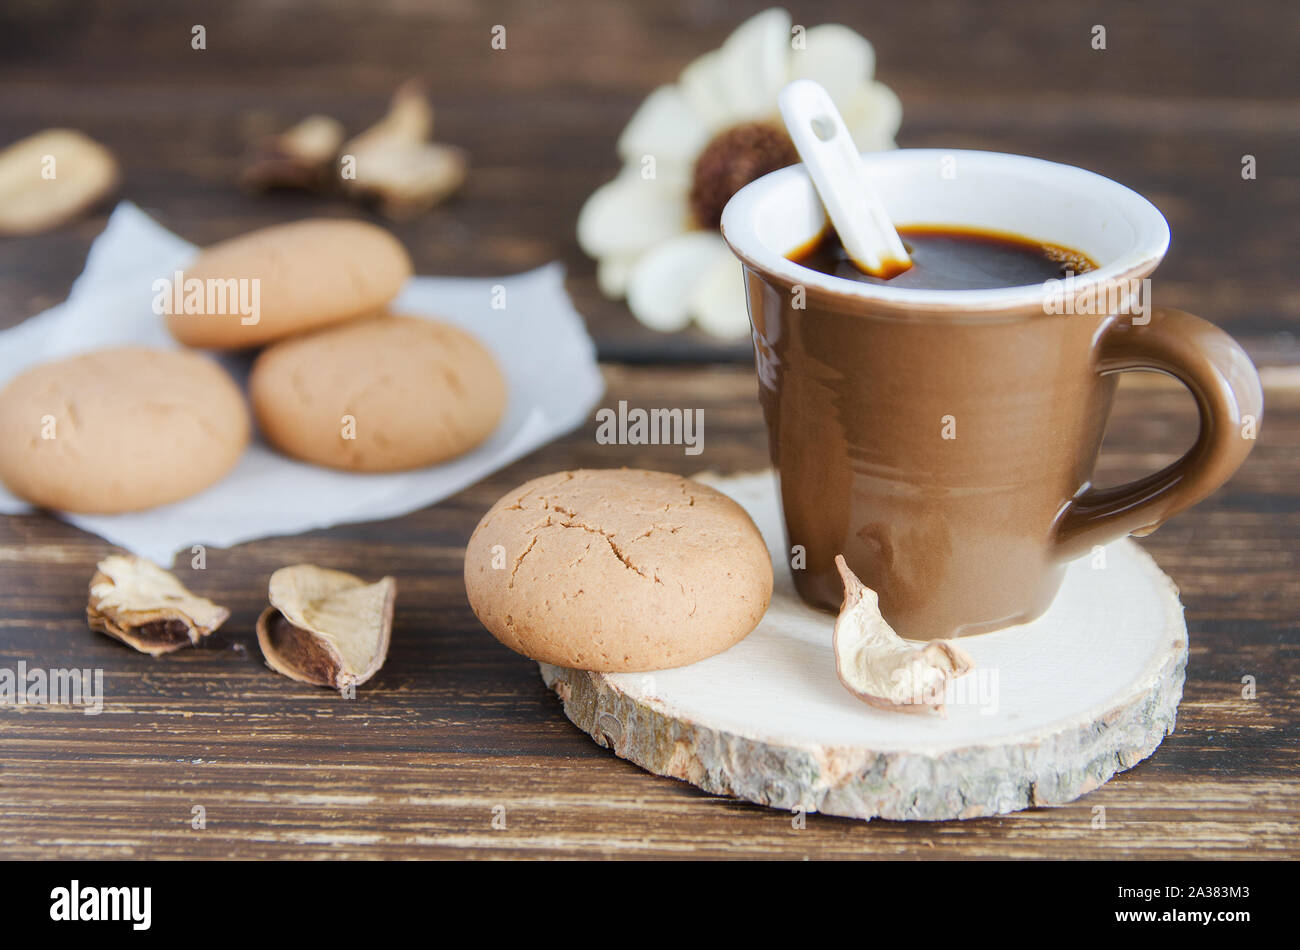 Cup Of Black Coffee And Almond Cookies And Fall Leaves On Wooden Table Delicious Beverage For Cold Autumn Season Good Morning Concept Stock Photo Alamy